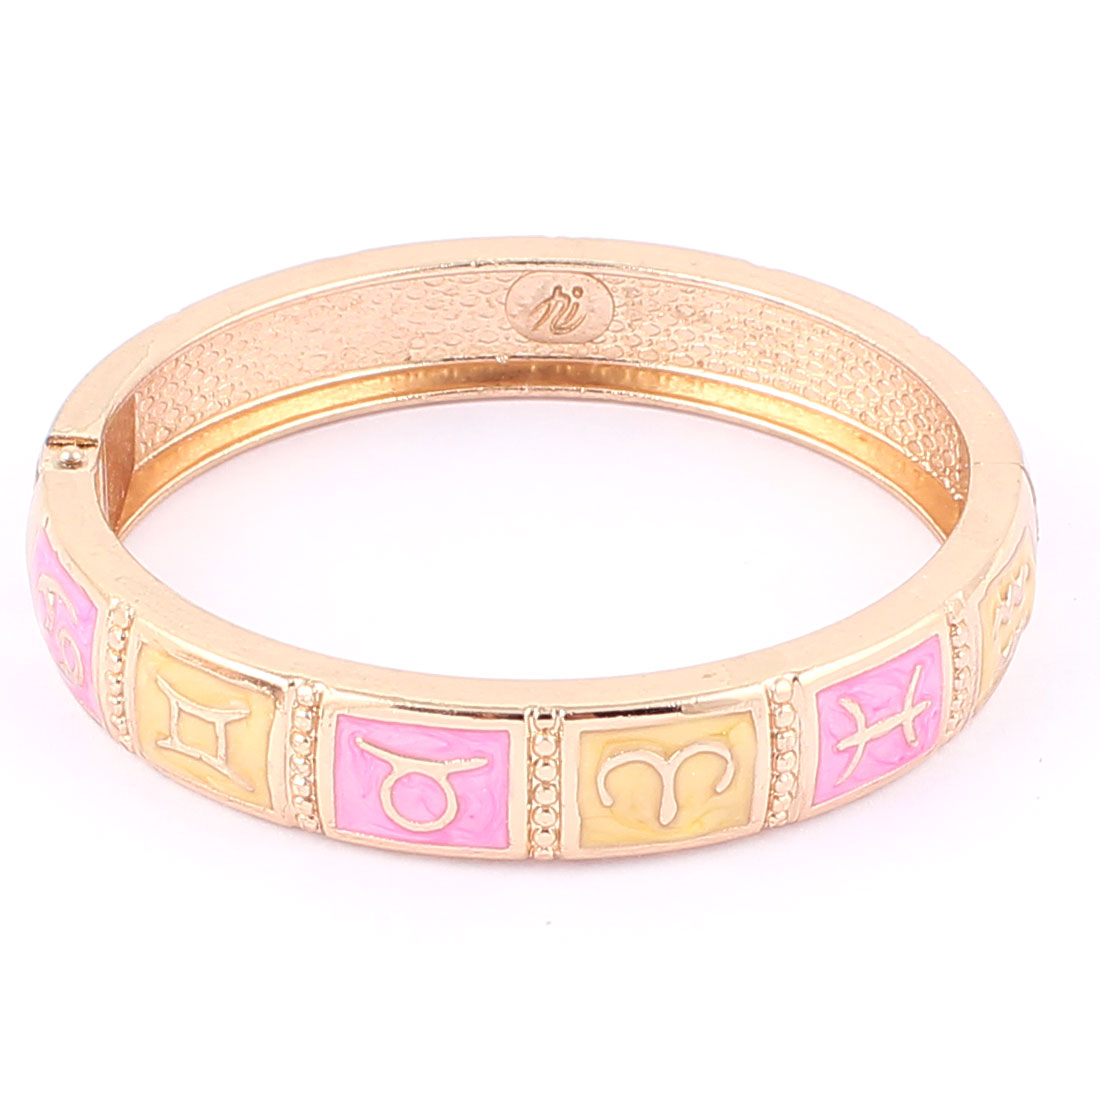 "Round Wrist Gold Tone Metal Hinged Wide 12 Constellations Pattern Bracelet Enamel Bangle 0.4"" Width"